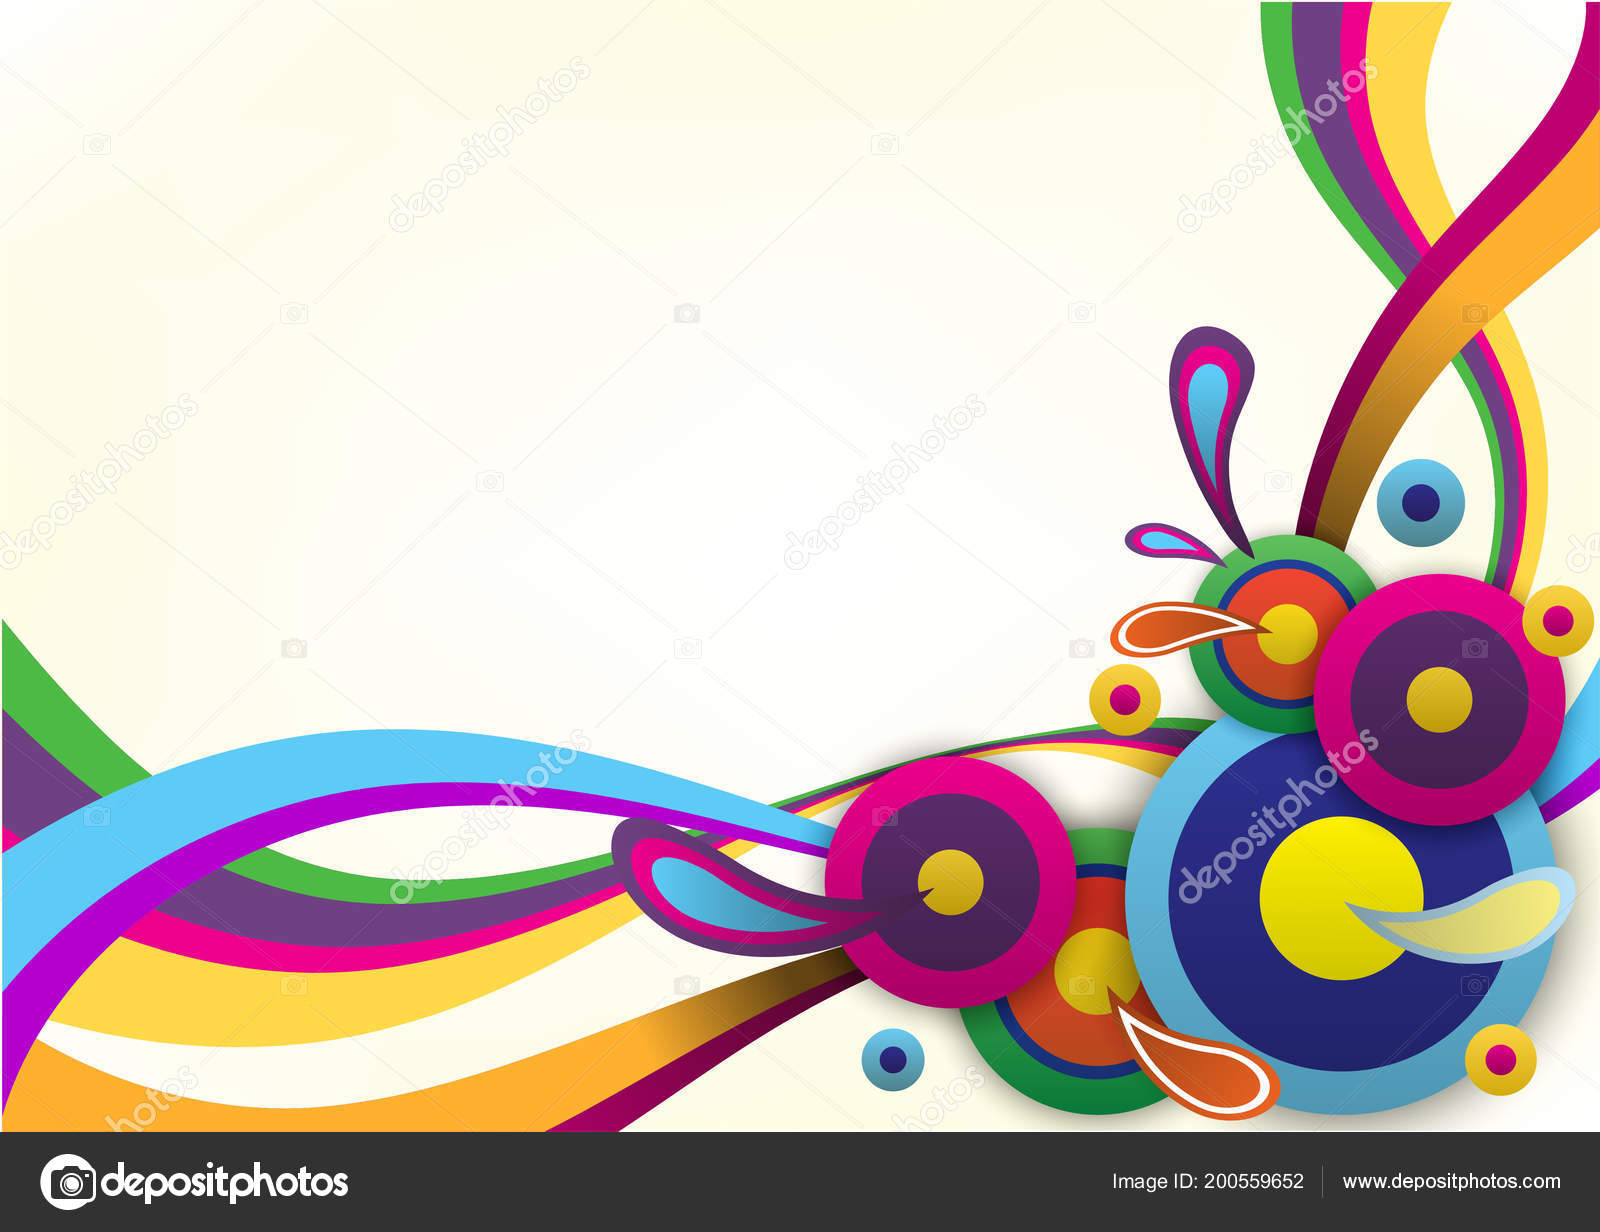 Unduh 450 Koleksi Background Design Abstract Paling Keren